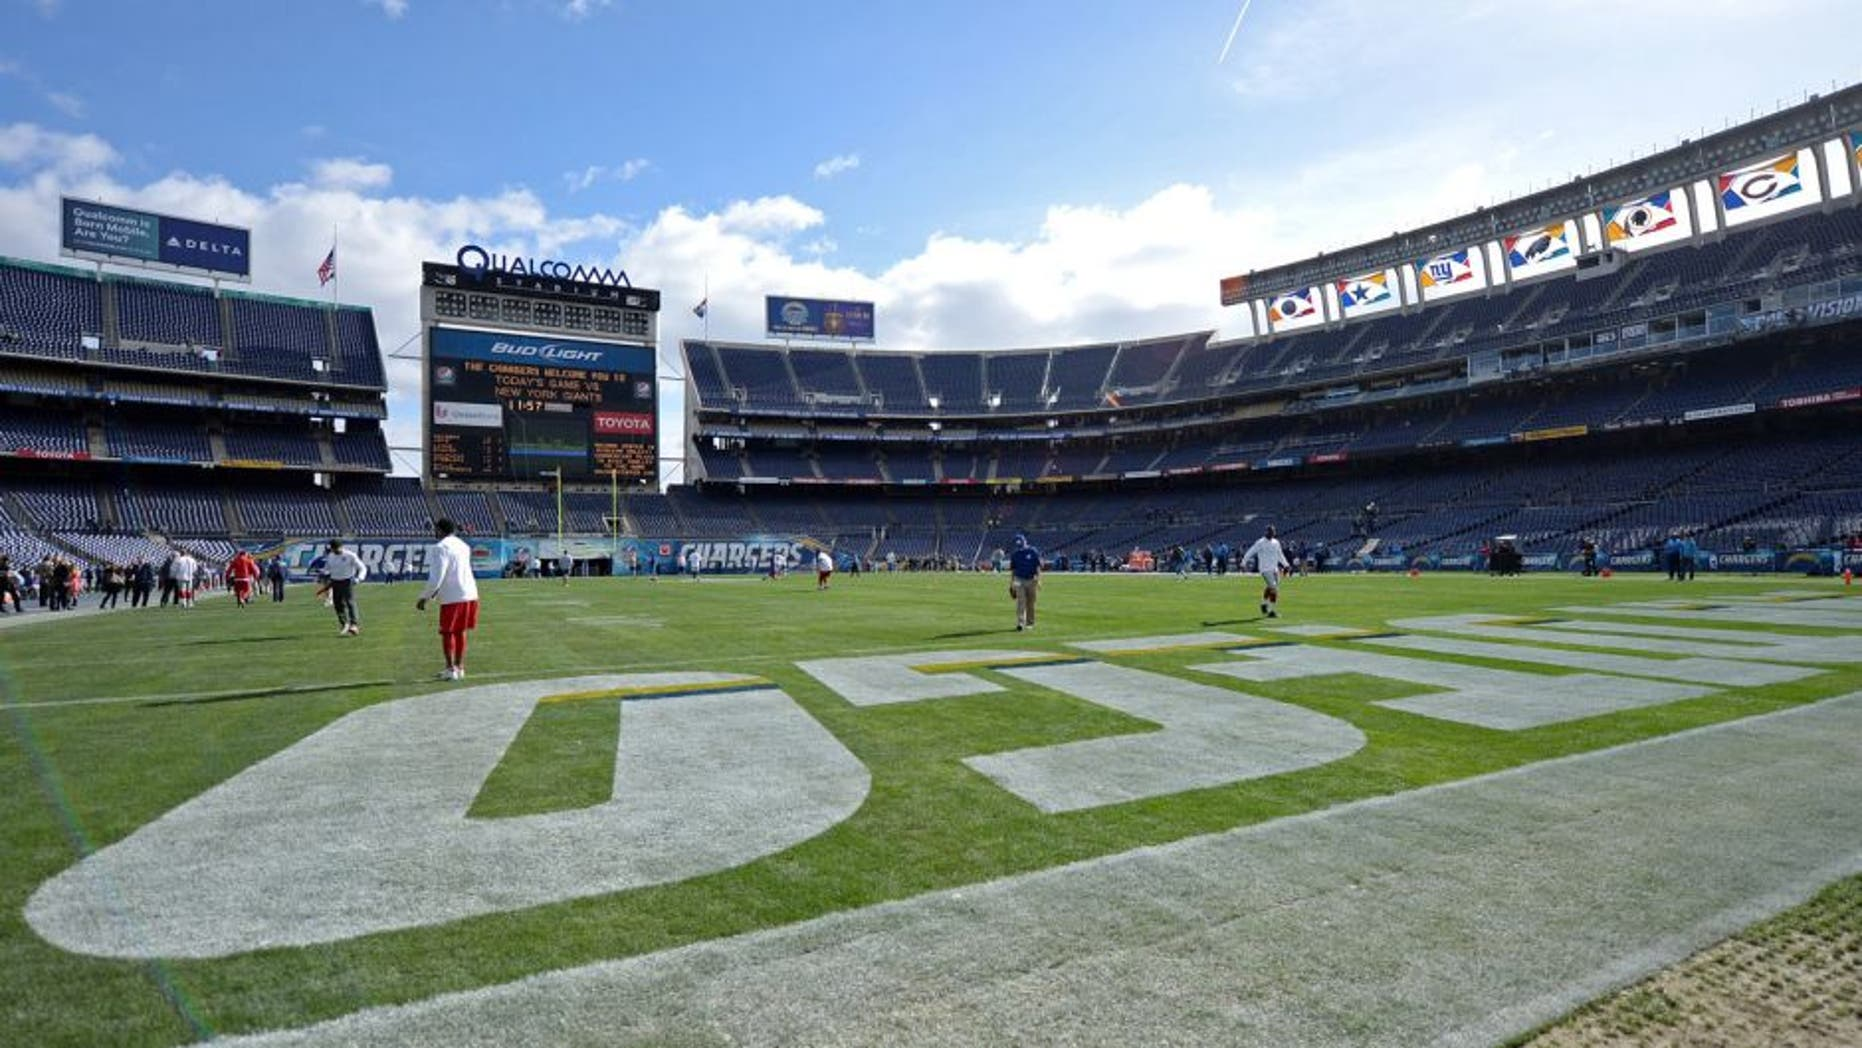 Dec 8, 2013; San Diego, CA, USA; View of Qualcomm stadium before the game between the San Diego Chargers and the New York Giants. Mandatory Credit: Jayne Kamin-Oncea-USA TODAY Sports